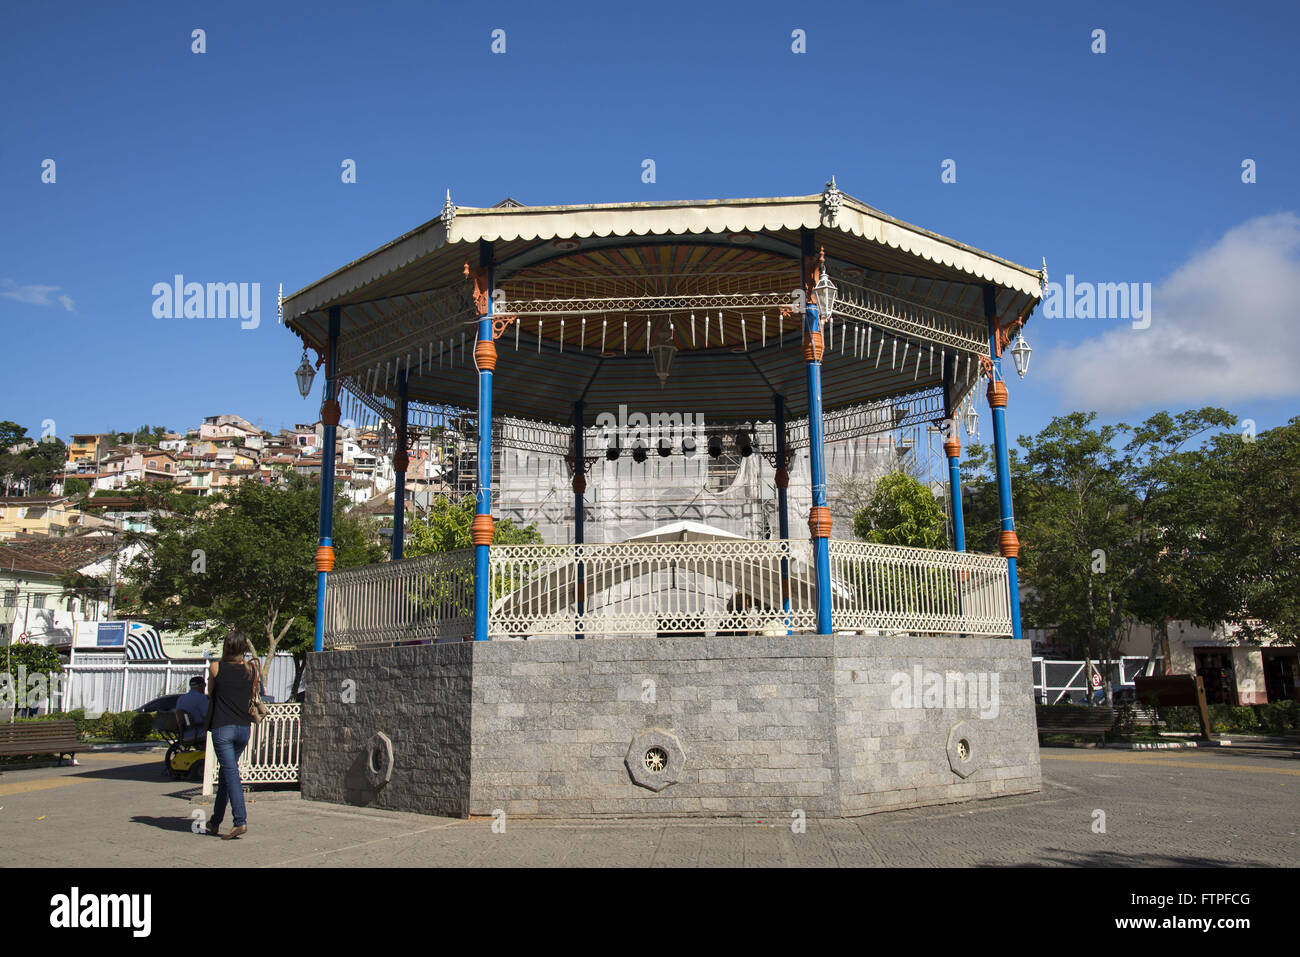 Bandstand Elpidio Praca dos Santos in the Oswaldo Cruz - Stock Image